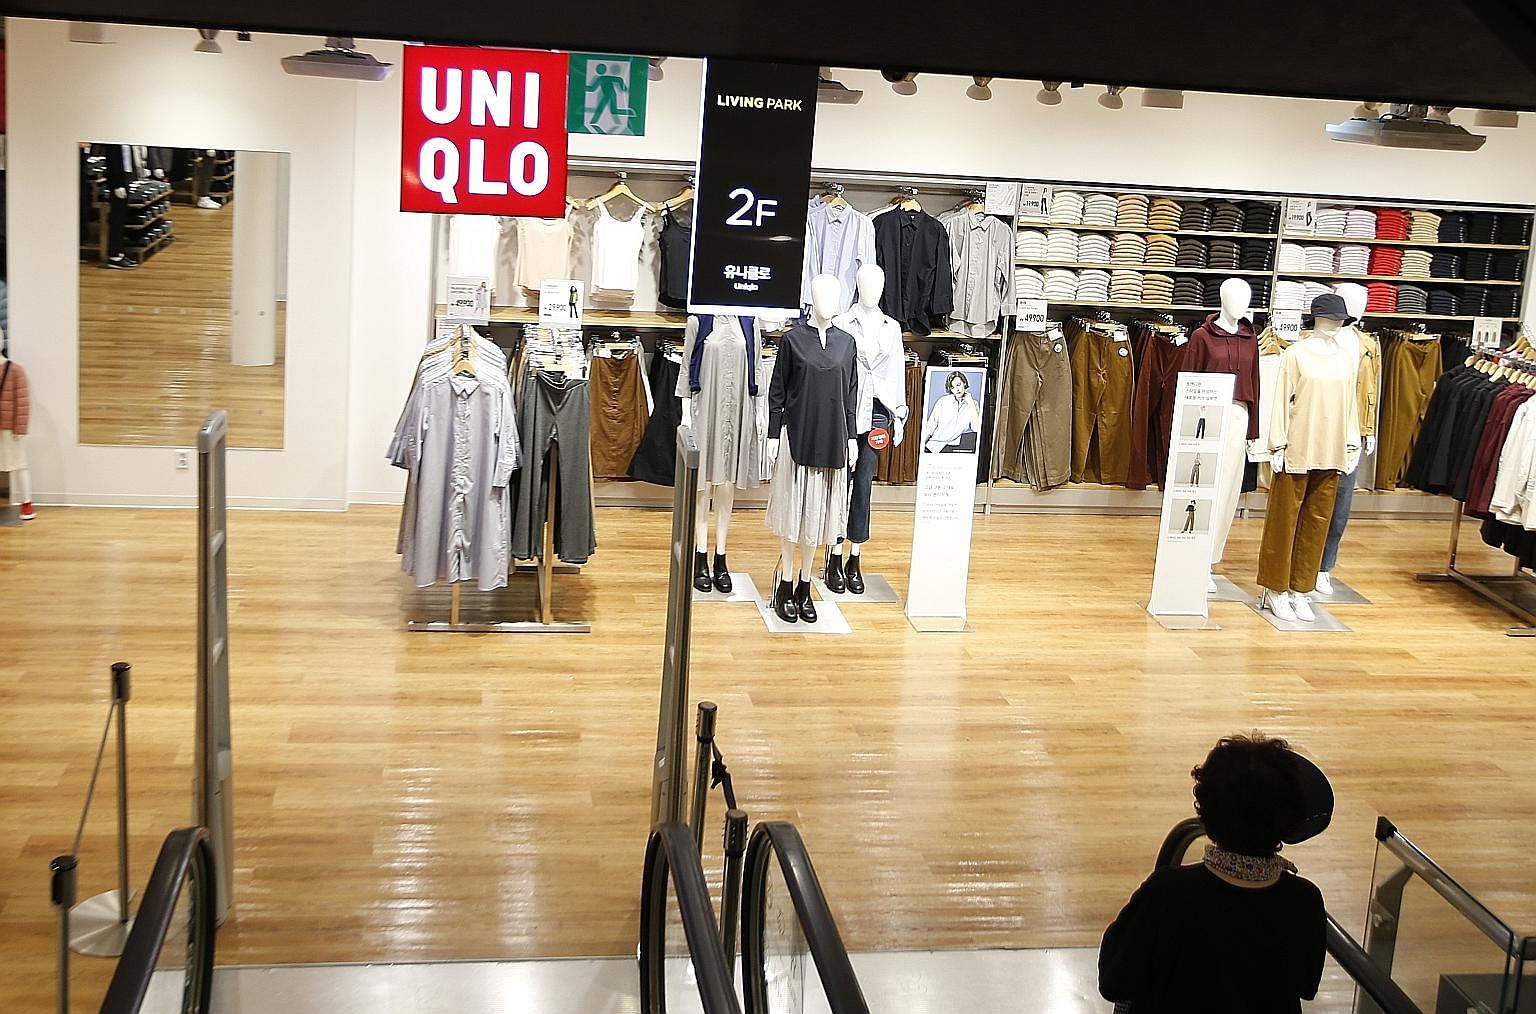 Boycott of Japanese products hitting Uniqlo's sales in S